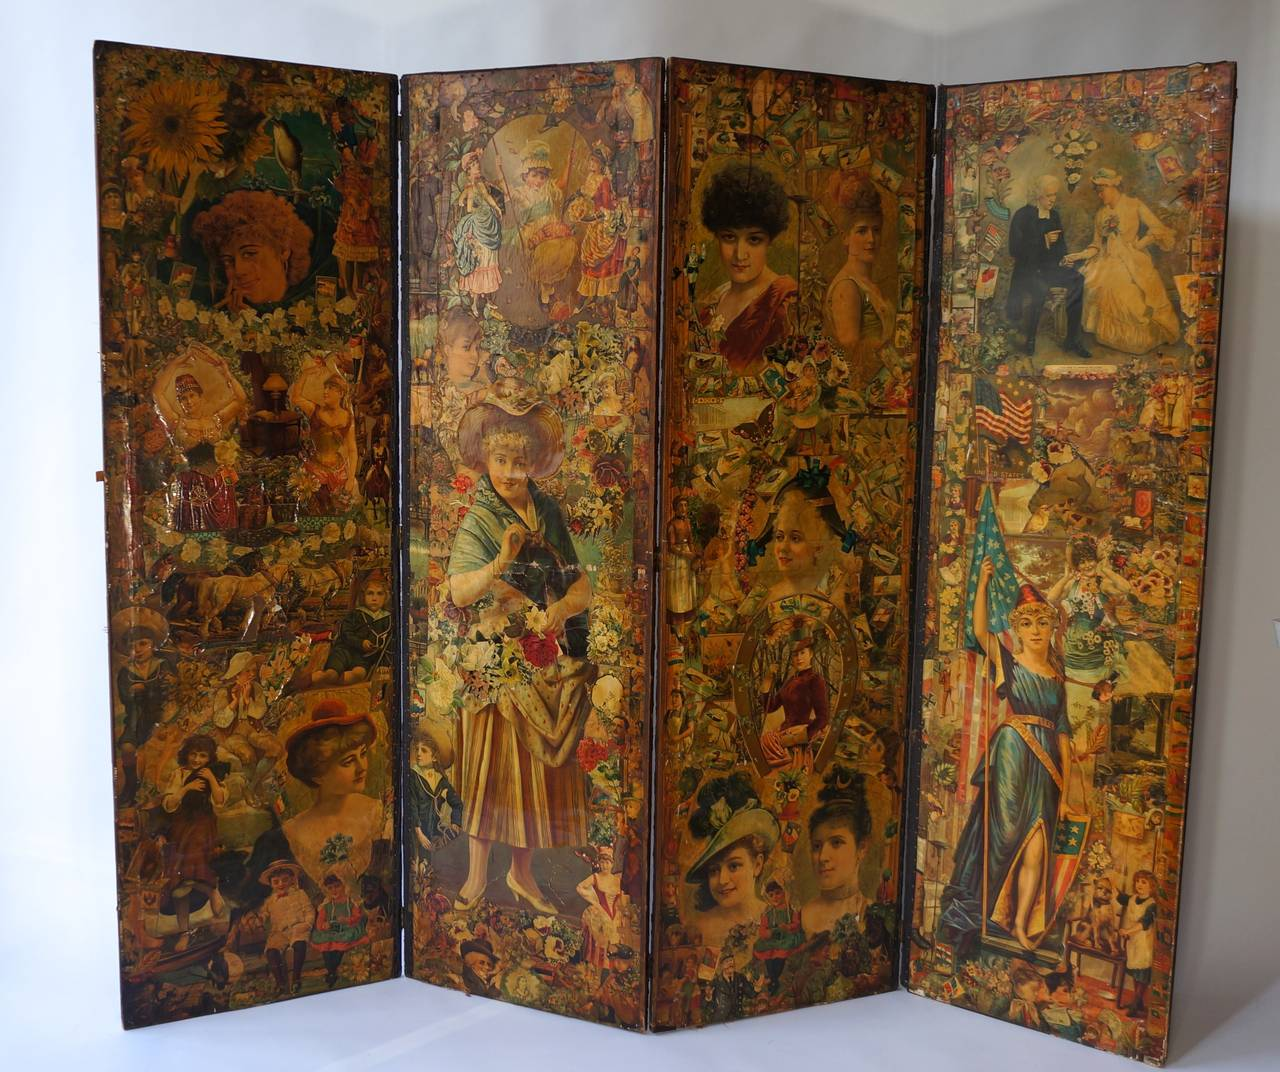 Folding Screen Decoupage Folding Screen Featuring A Collage Of Figures For Sale